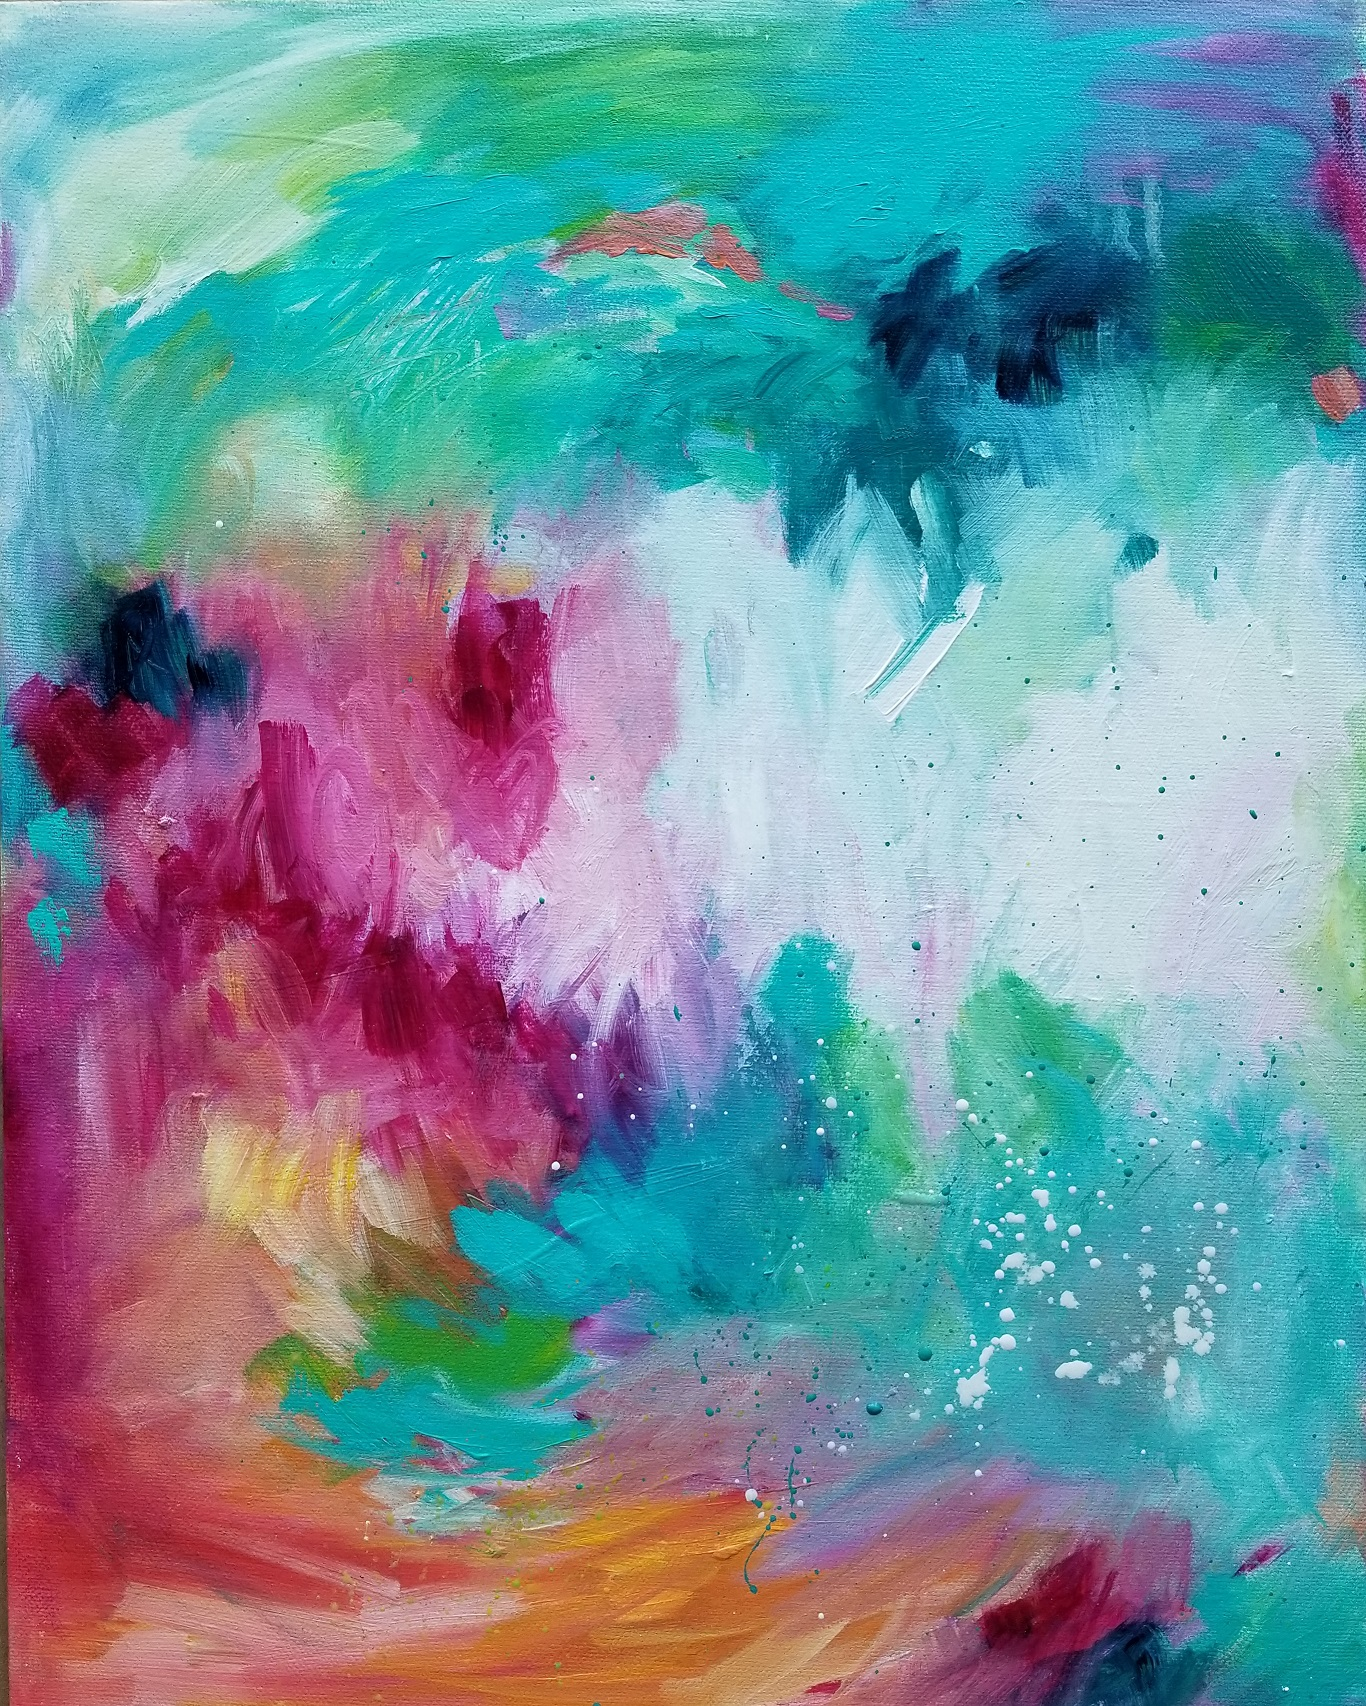 Abstract Brushstrokes Workshop True Colors with Kellee Wynne Conrad 1 (8) small.jpg